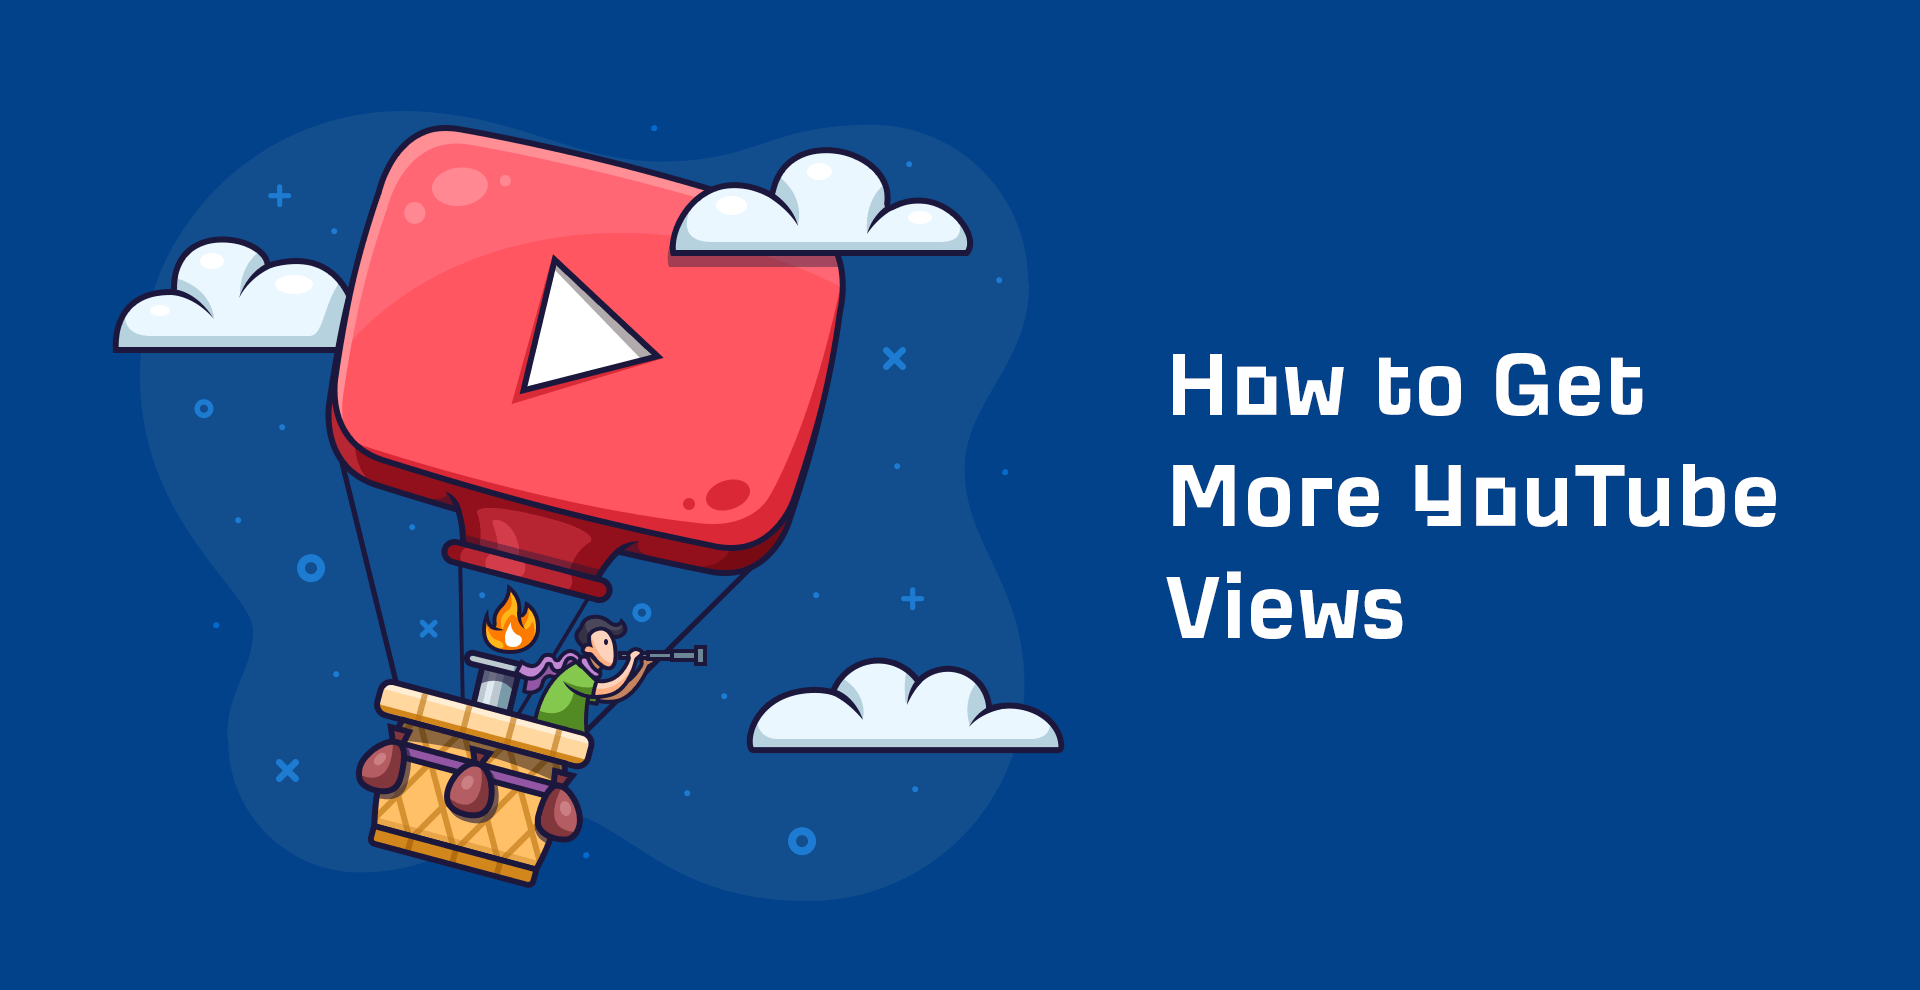 fb how to get more youtube views